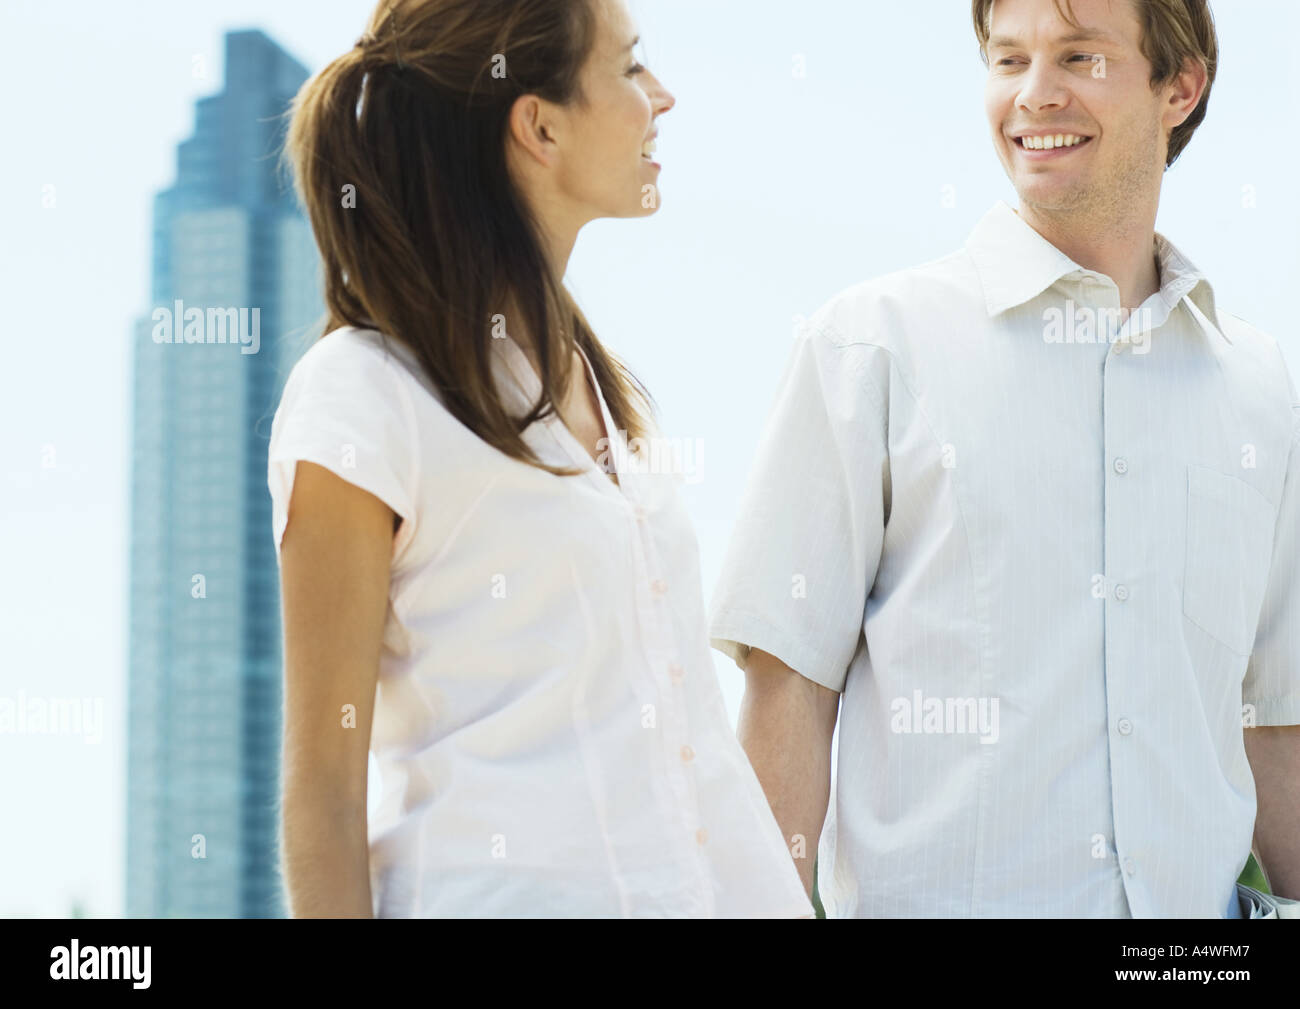 Young couple smiling at each other in urban setting - Stock Image